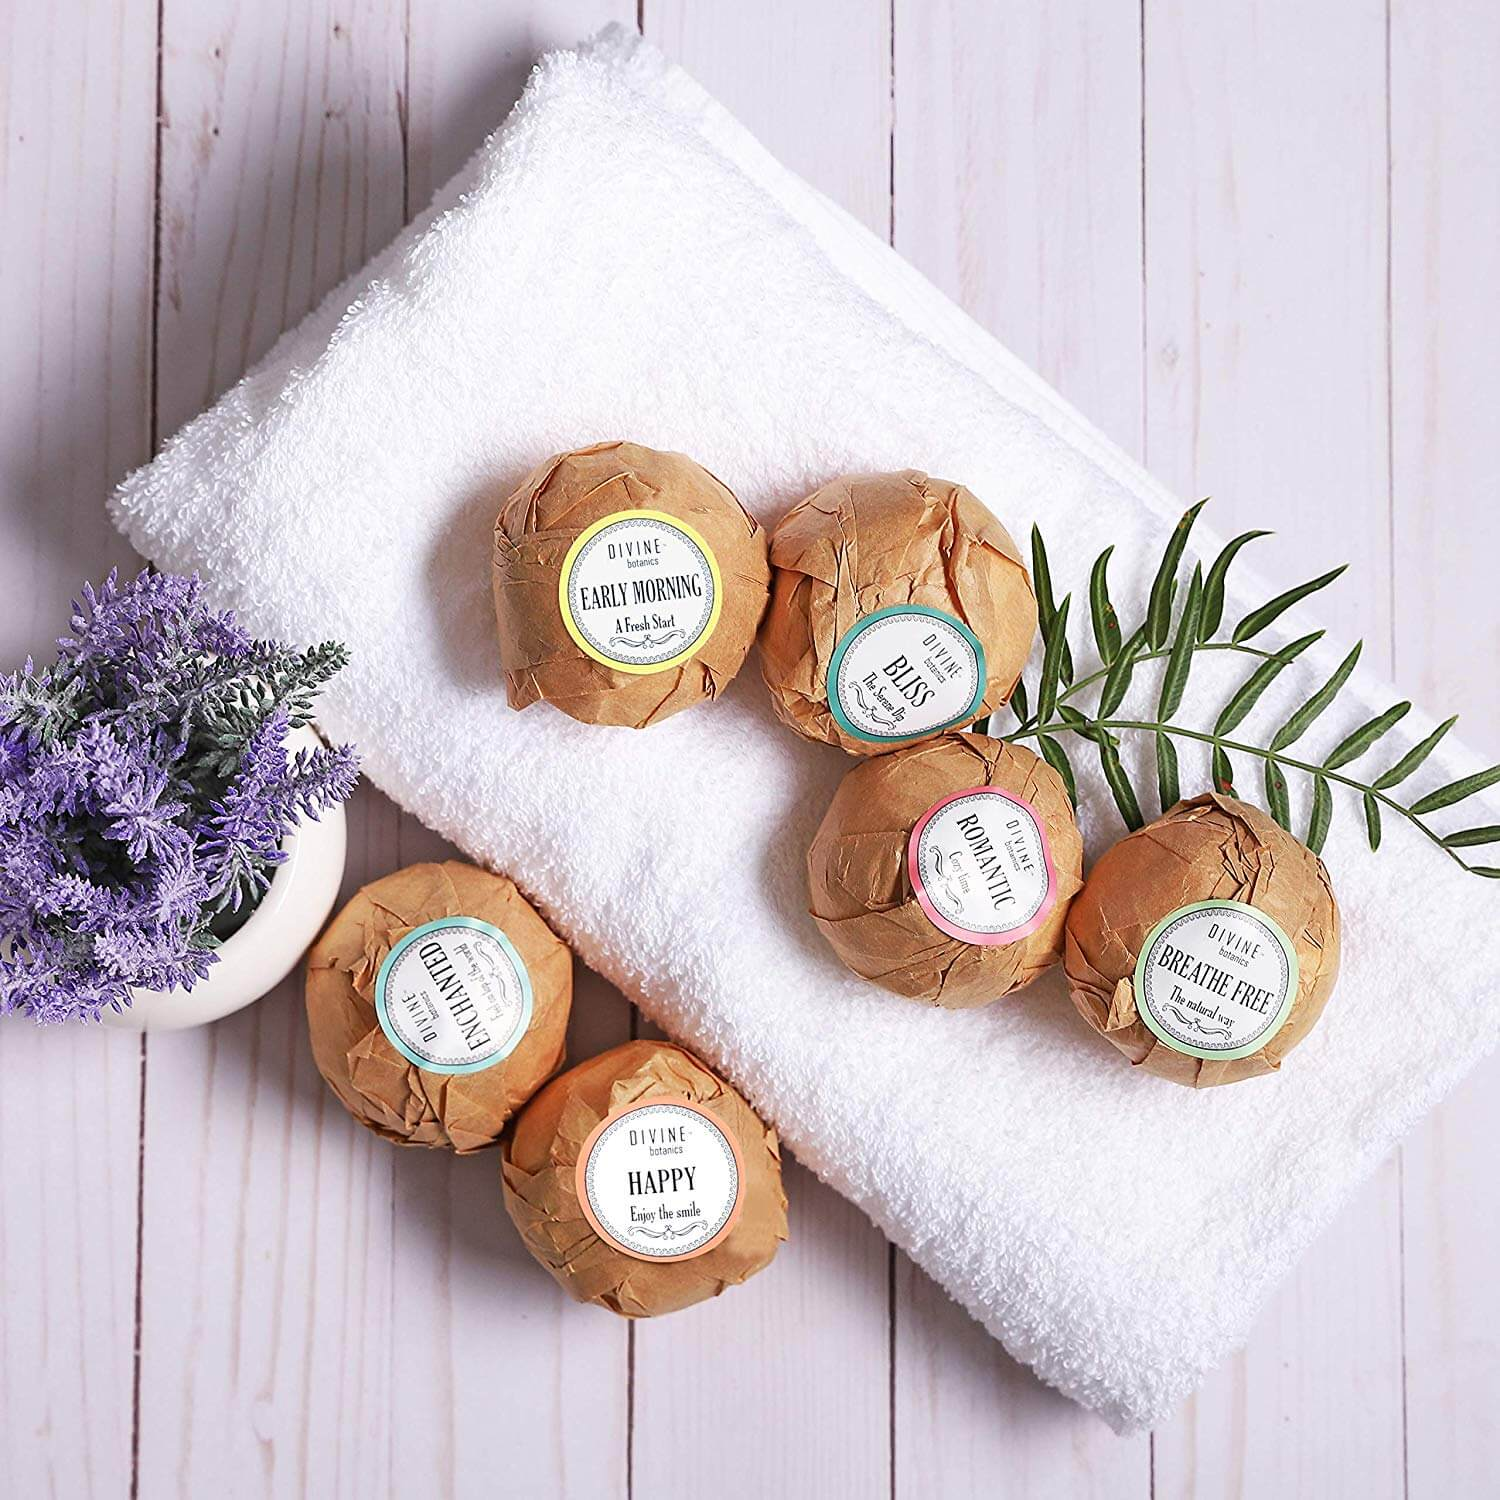 bath bombs for a spa day at home